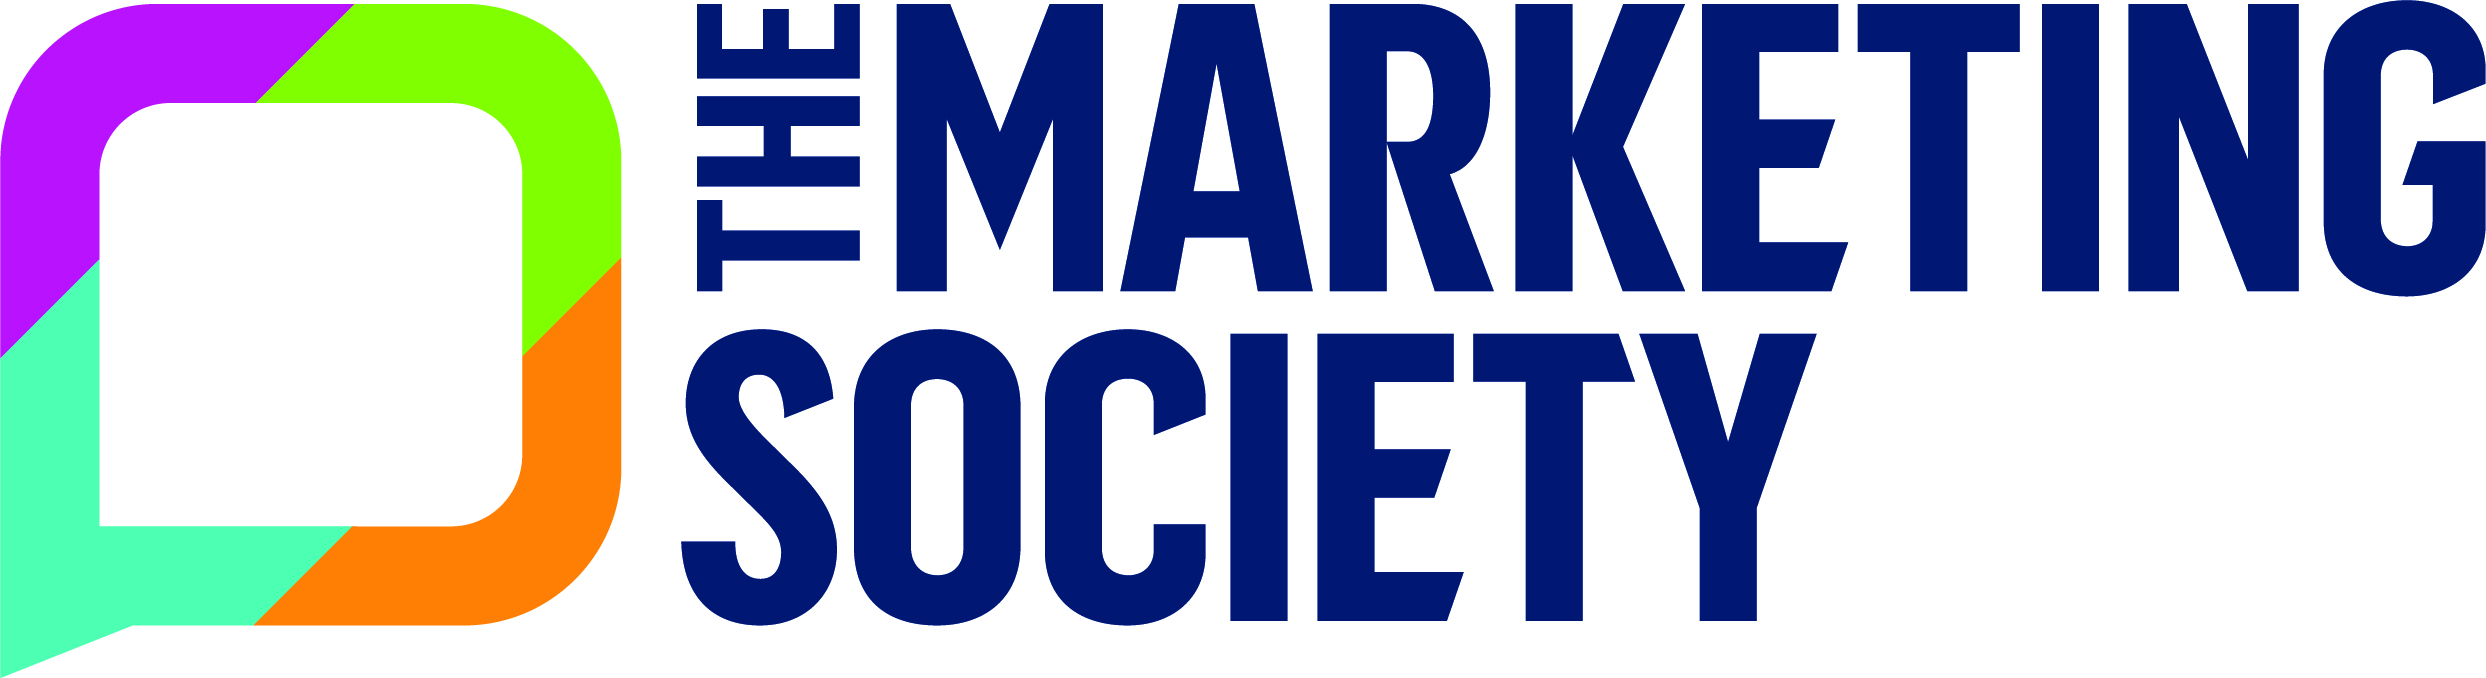 Marketing Society_Primary Brand Marque - Blue Text ALWAYS USE.jpg